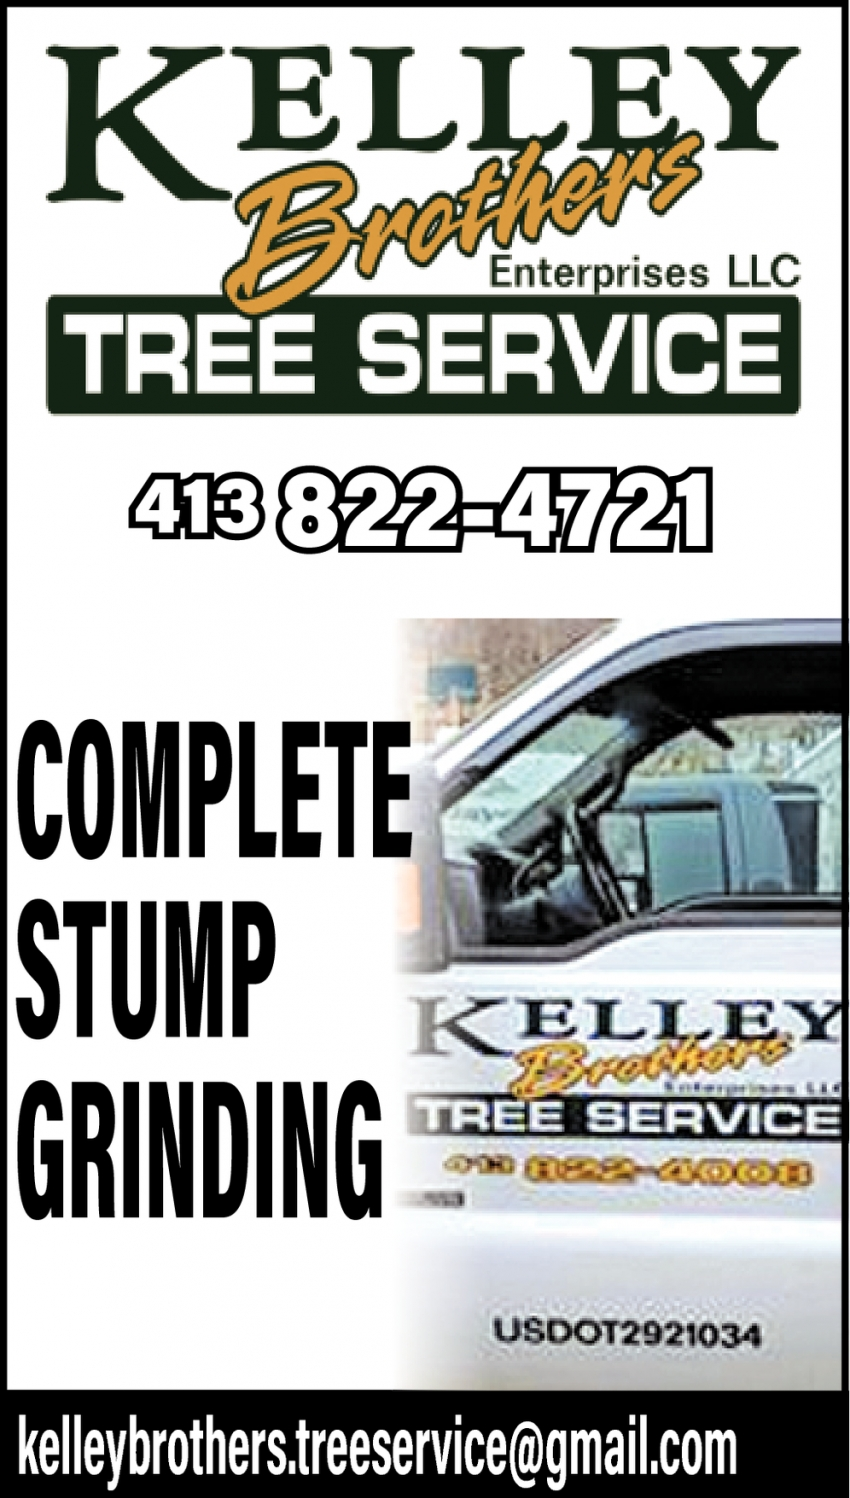 Complete Stump Grinding